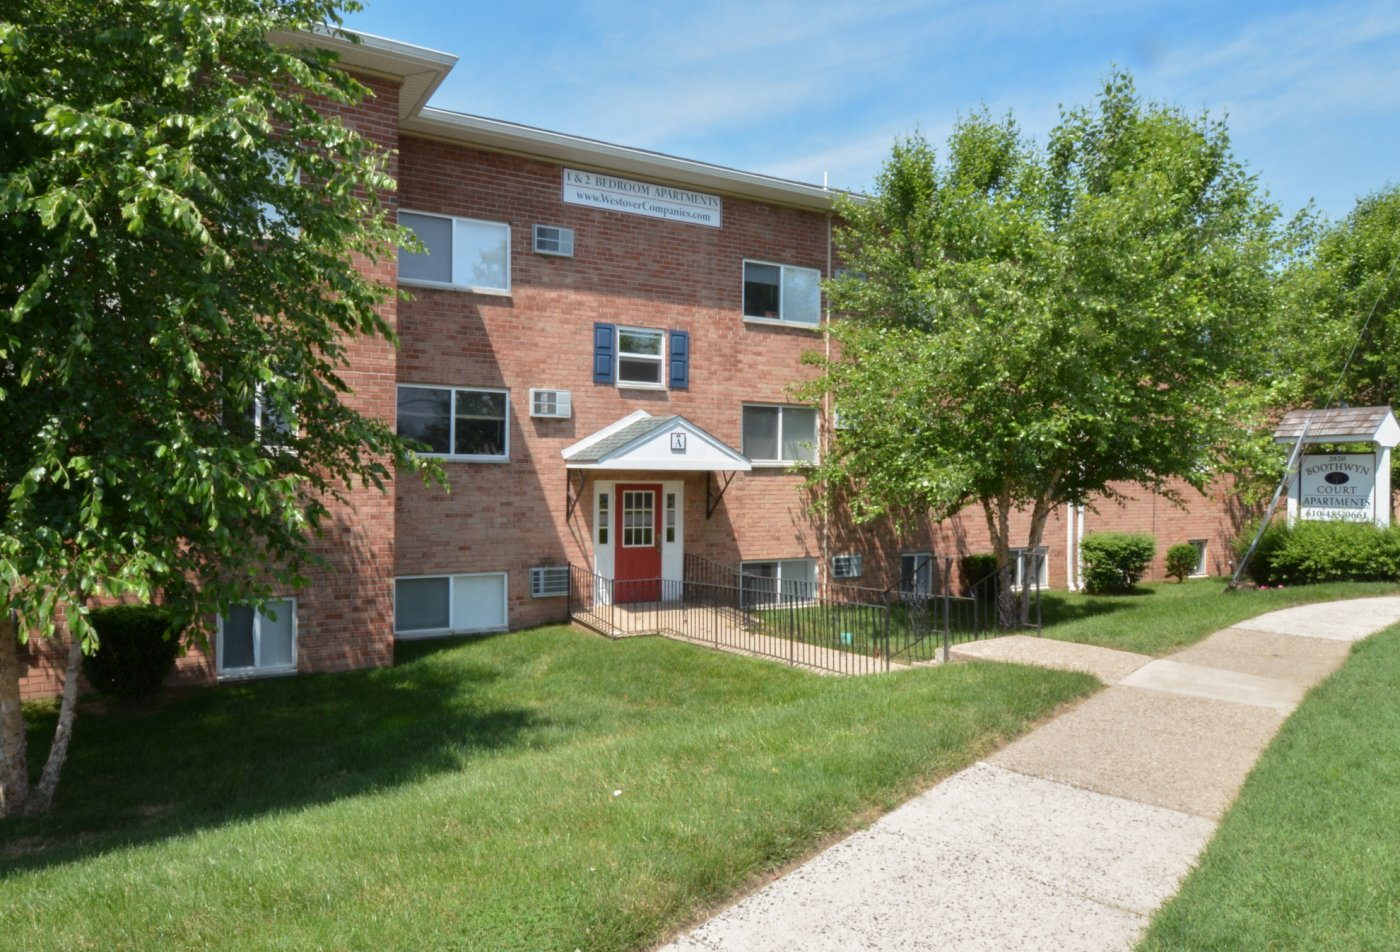 Apartments for rent in Boothwyn, PA | Boothwyn Court Apartments